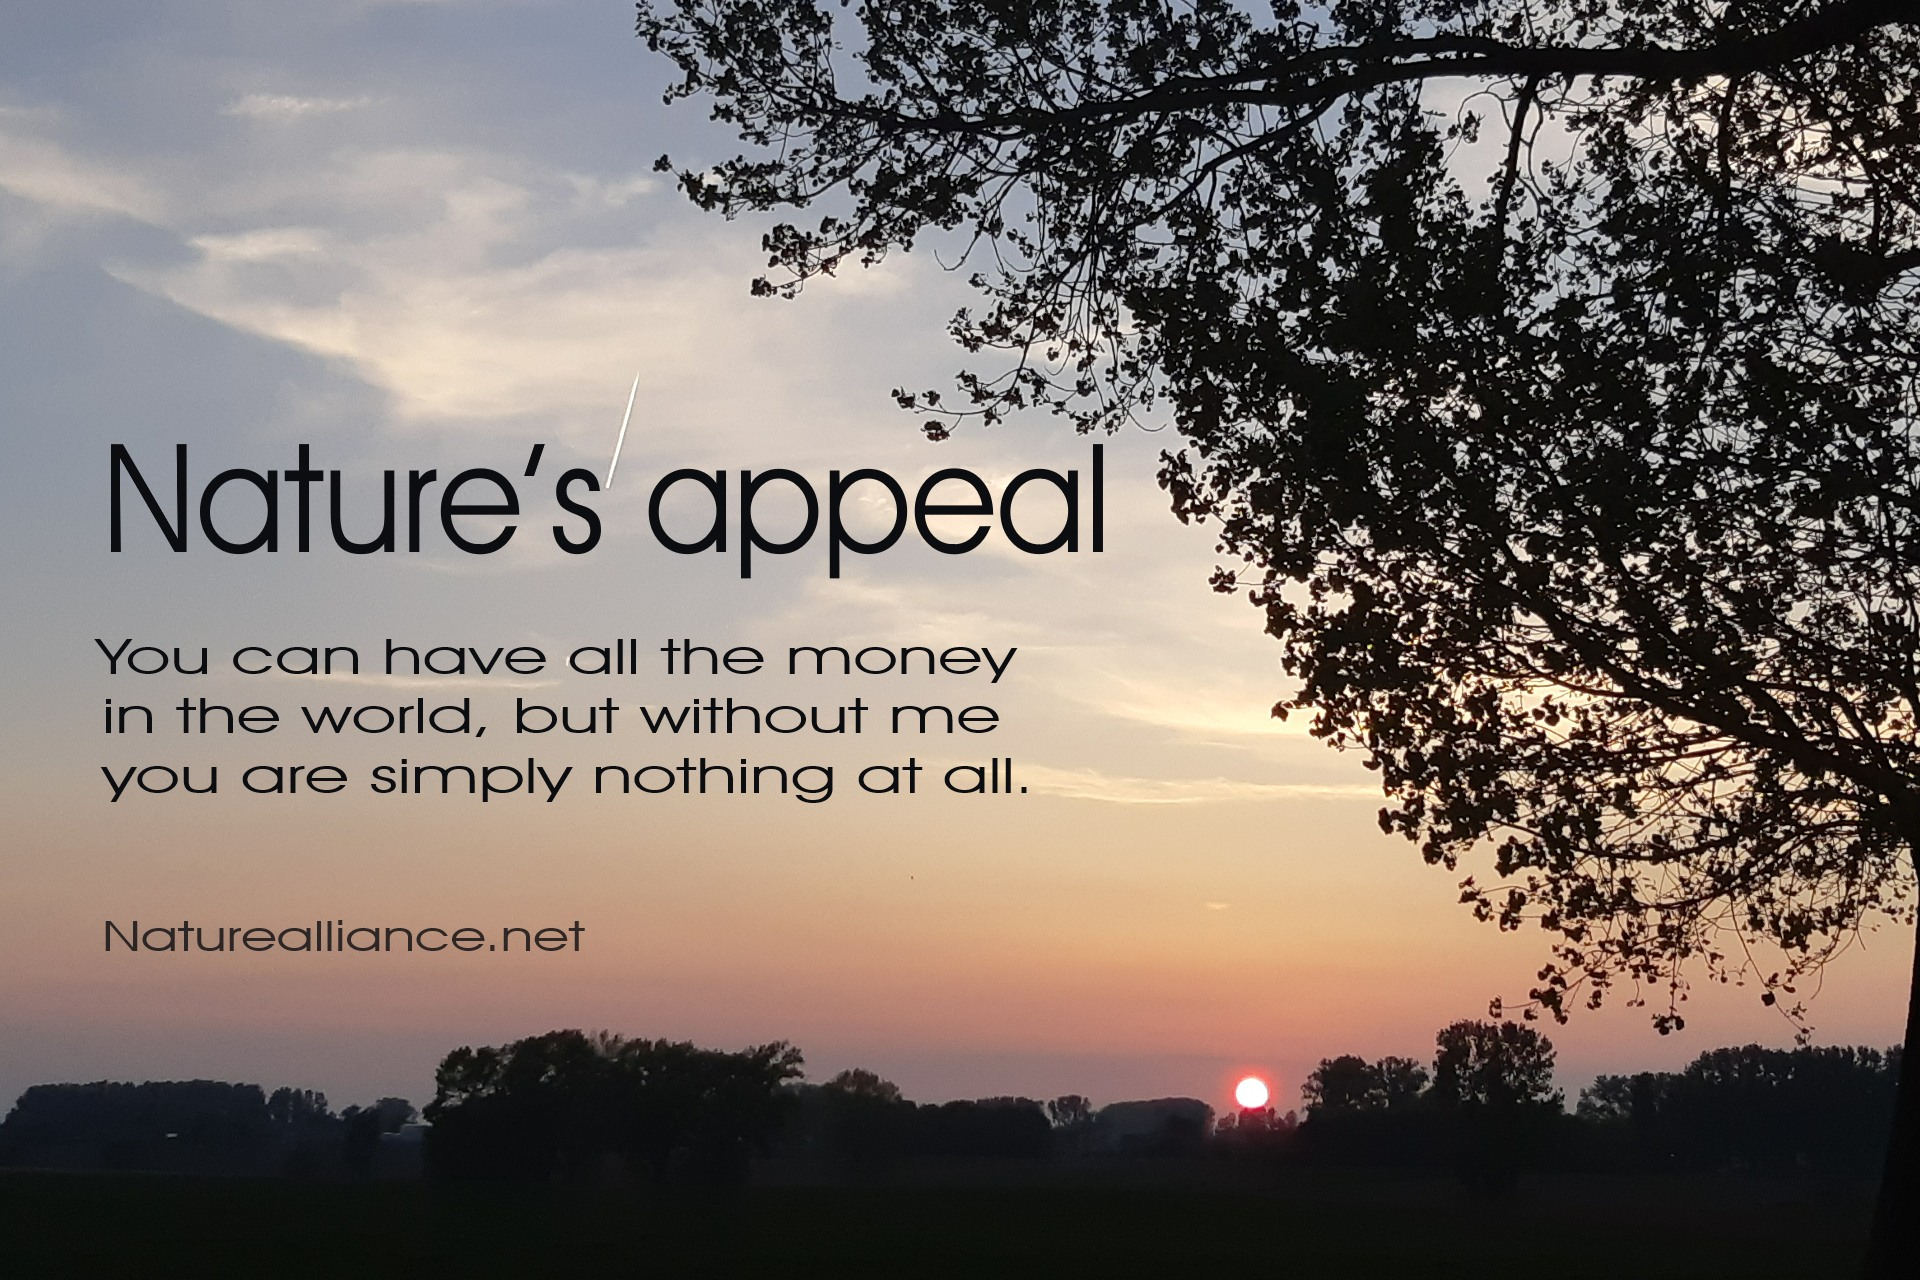 Nature's appeal